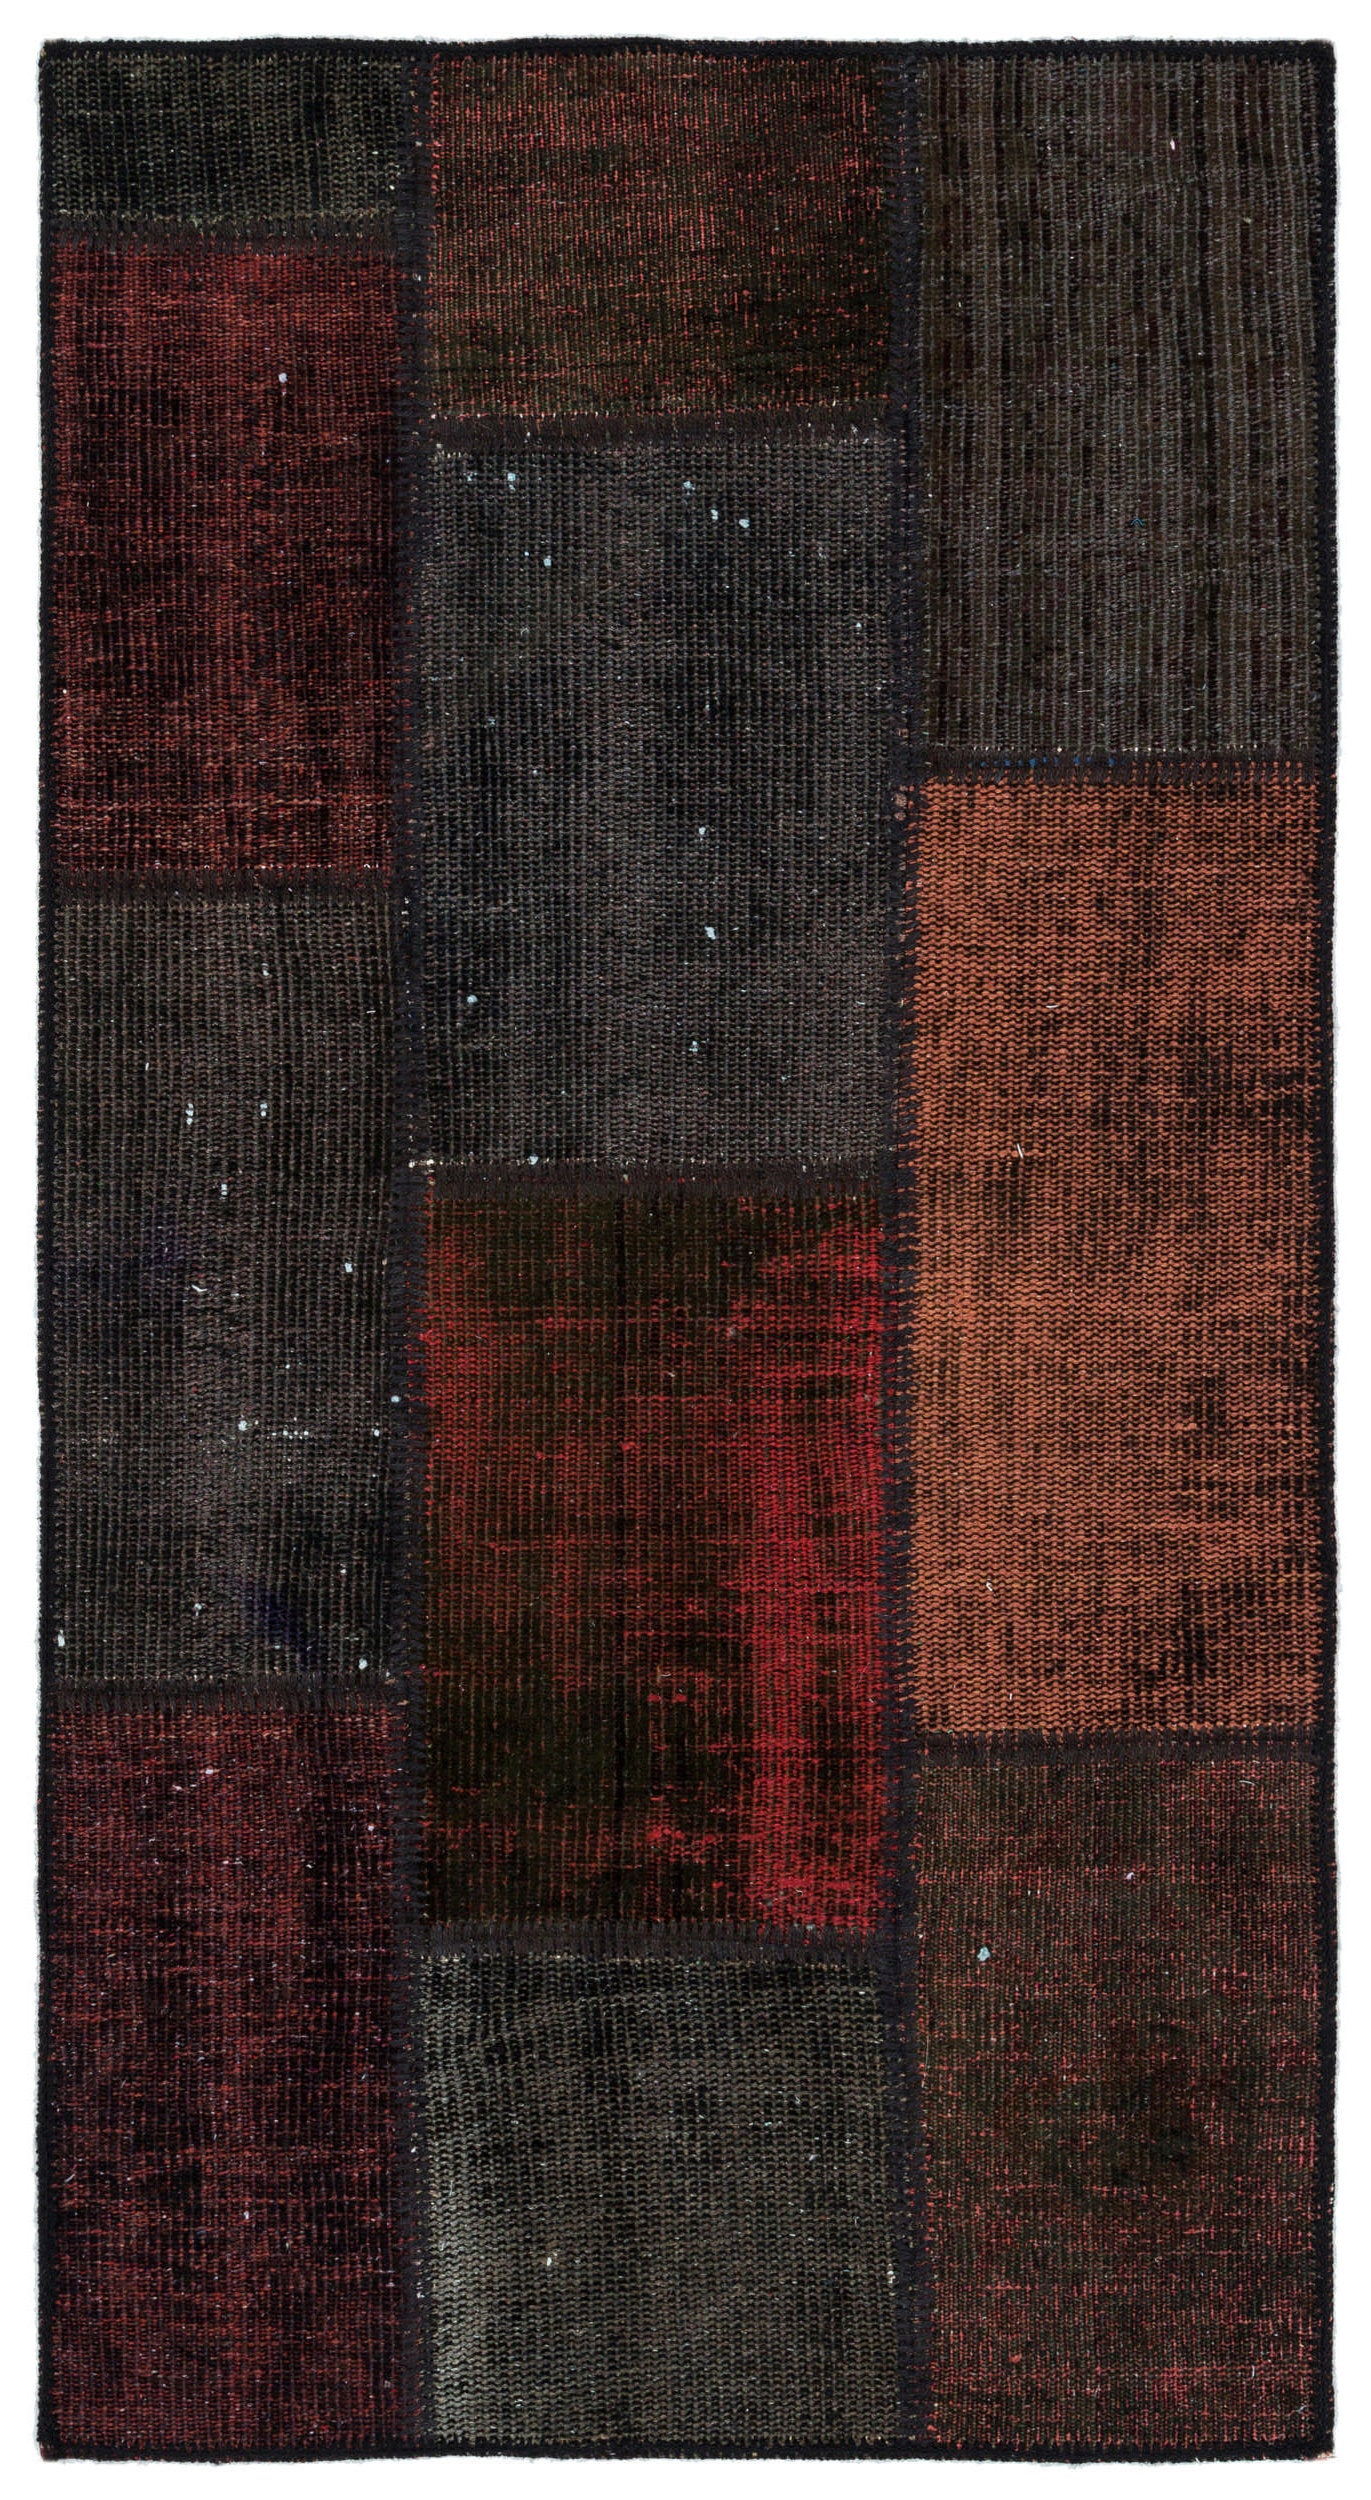 Black Over Dyed Patchwork Unique Rug 2'8'' x 5'0'' ft 82 x 153 cm